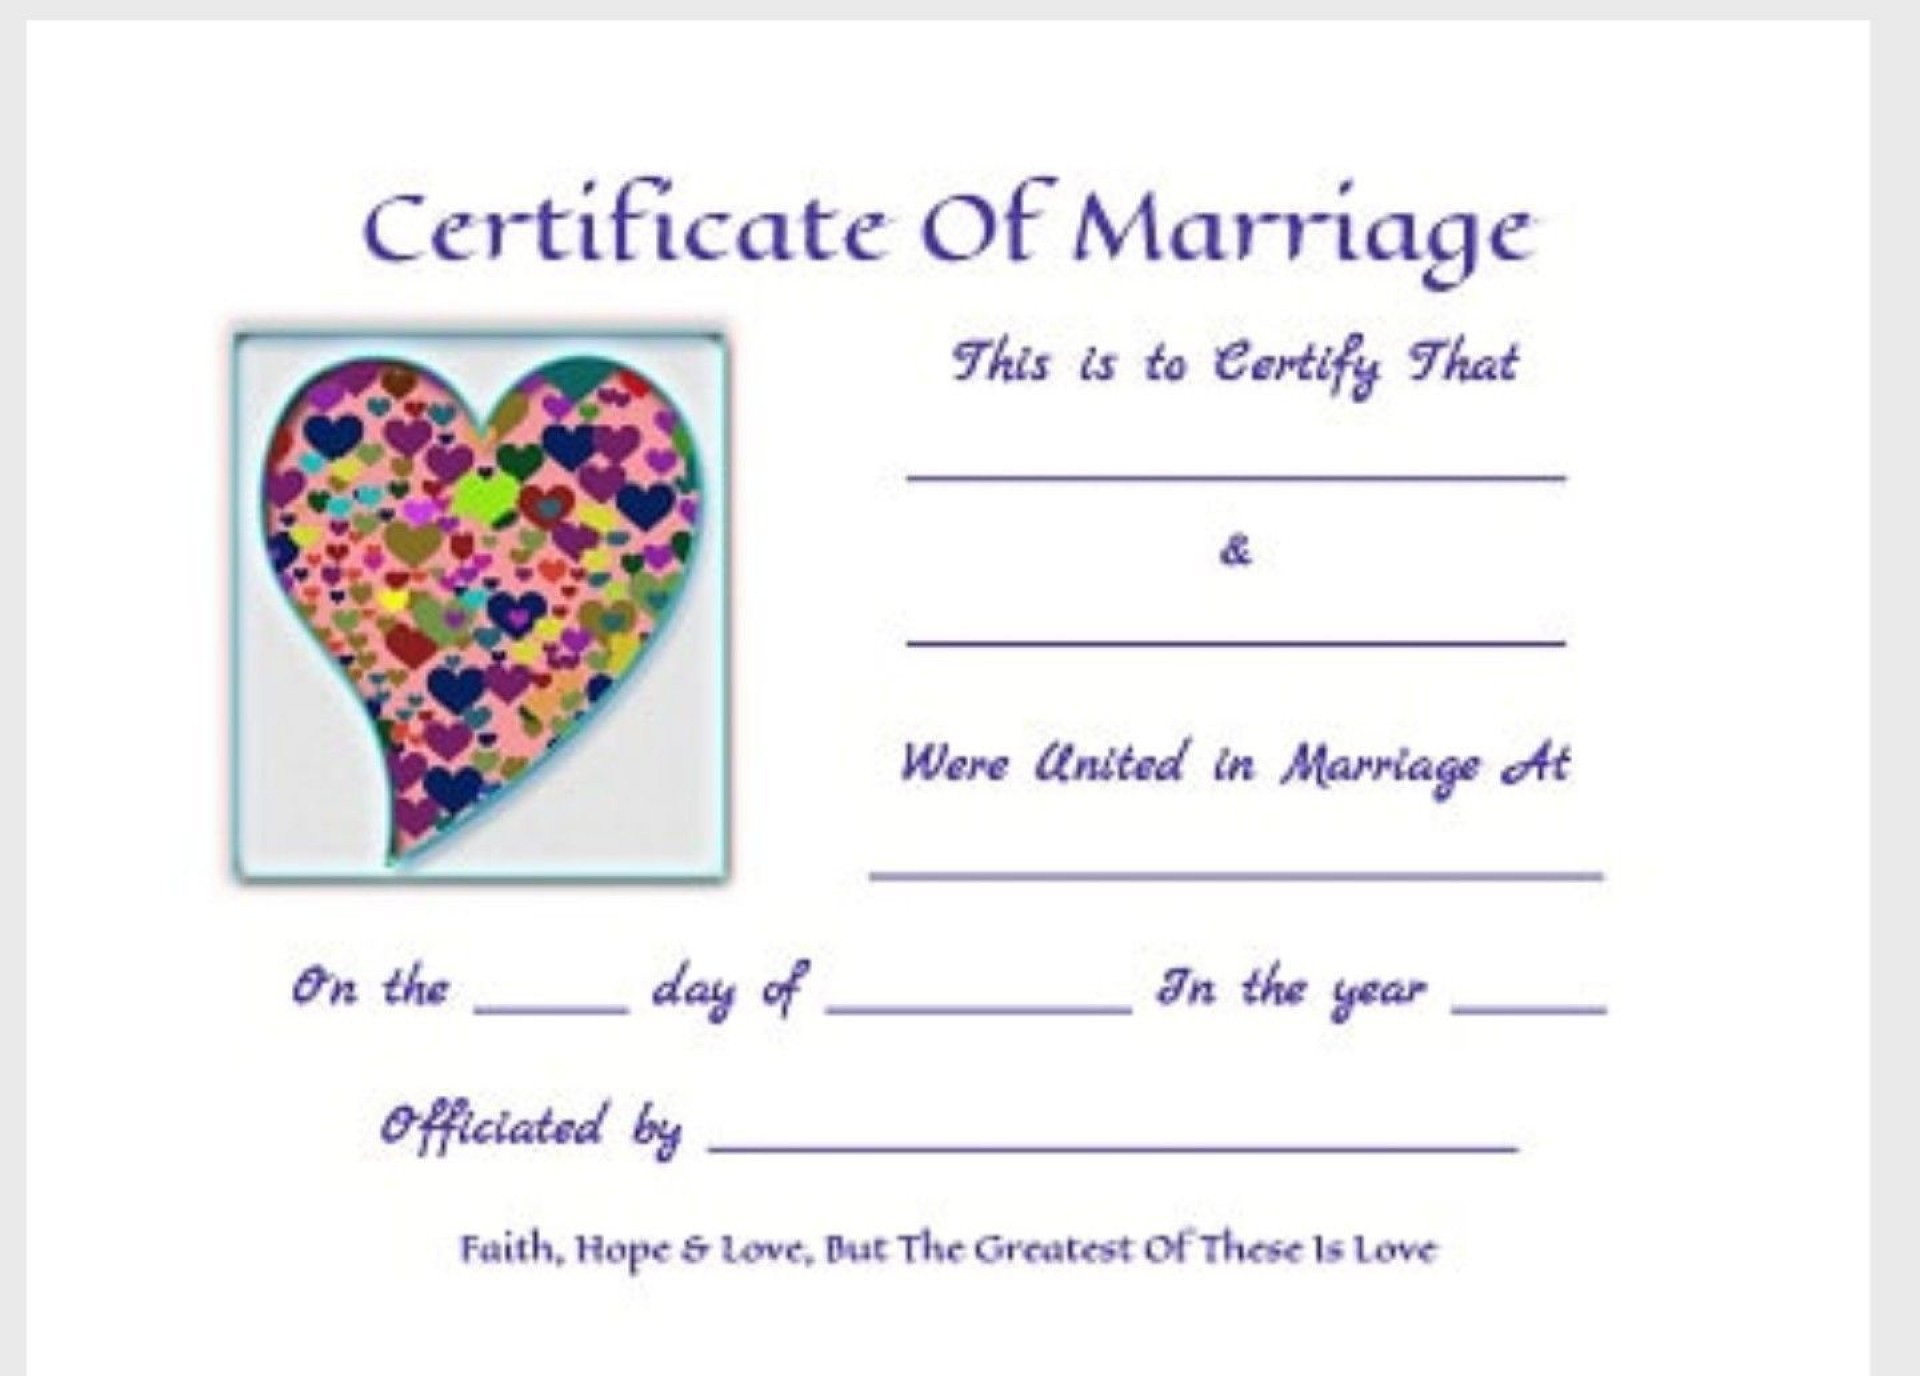 000 Striking Free Marriage Certificate Template Inspiration  Renewal Translation From Spanish To English Wedding Download1920